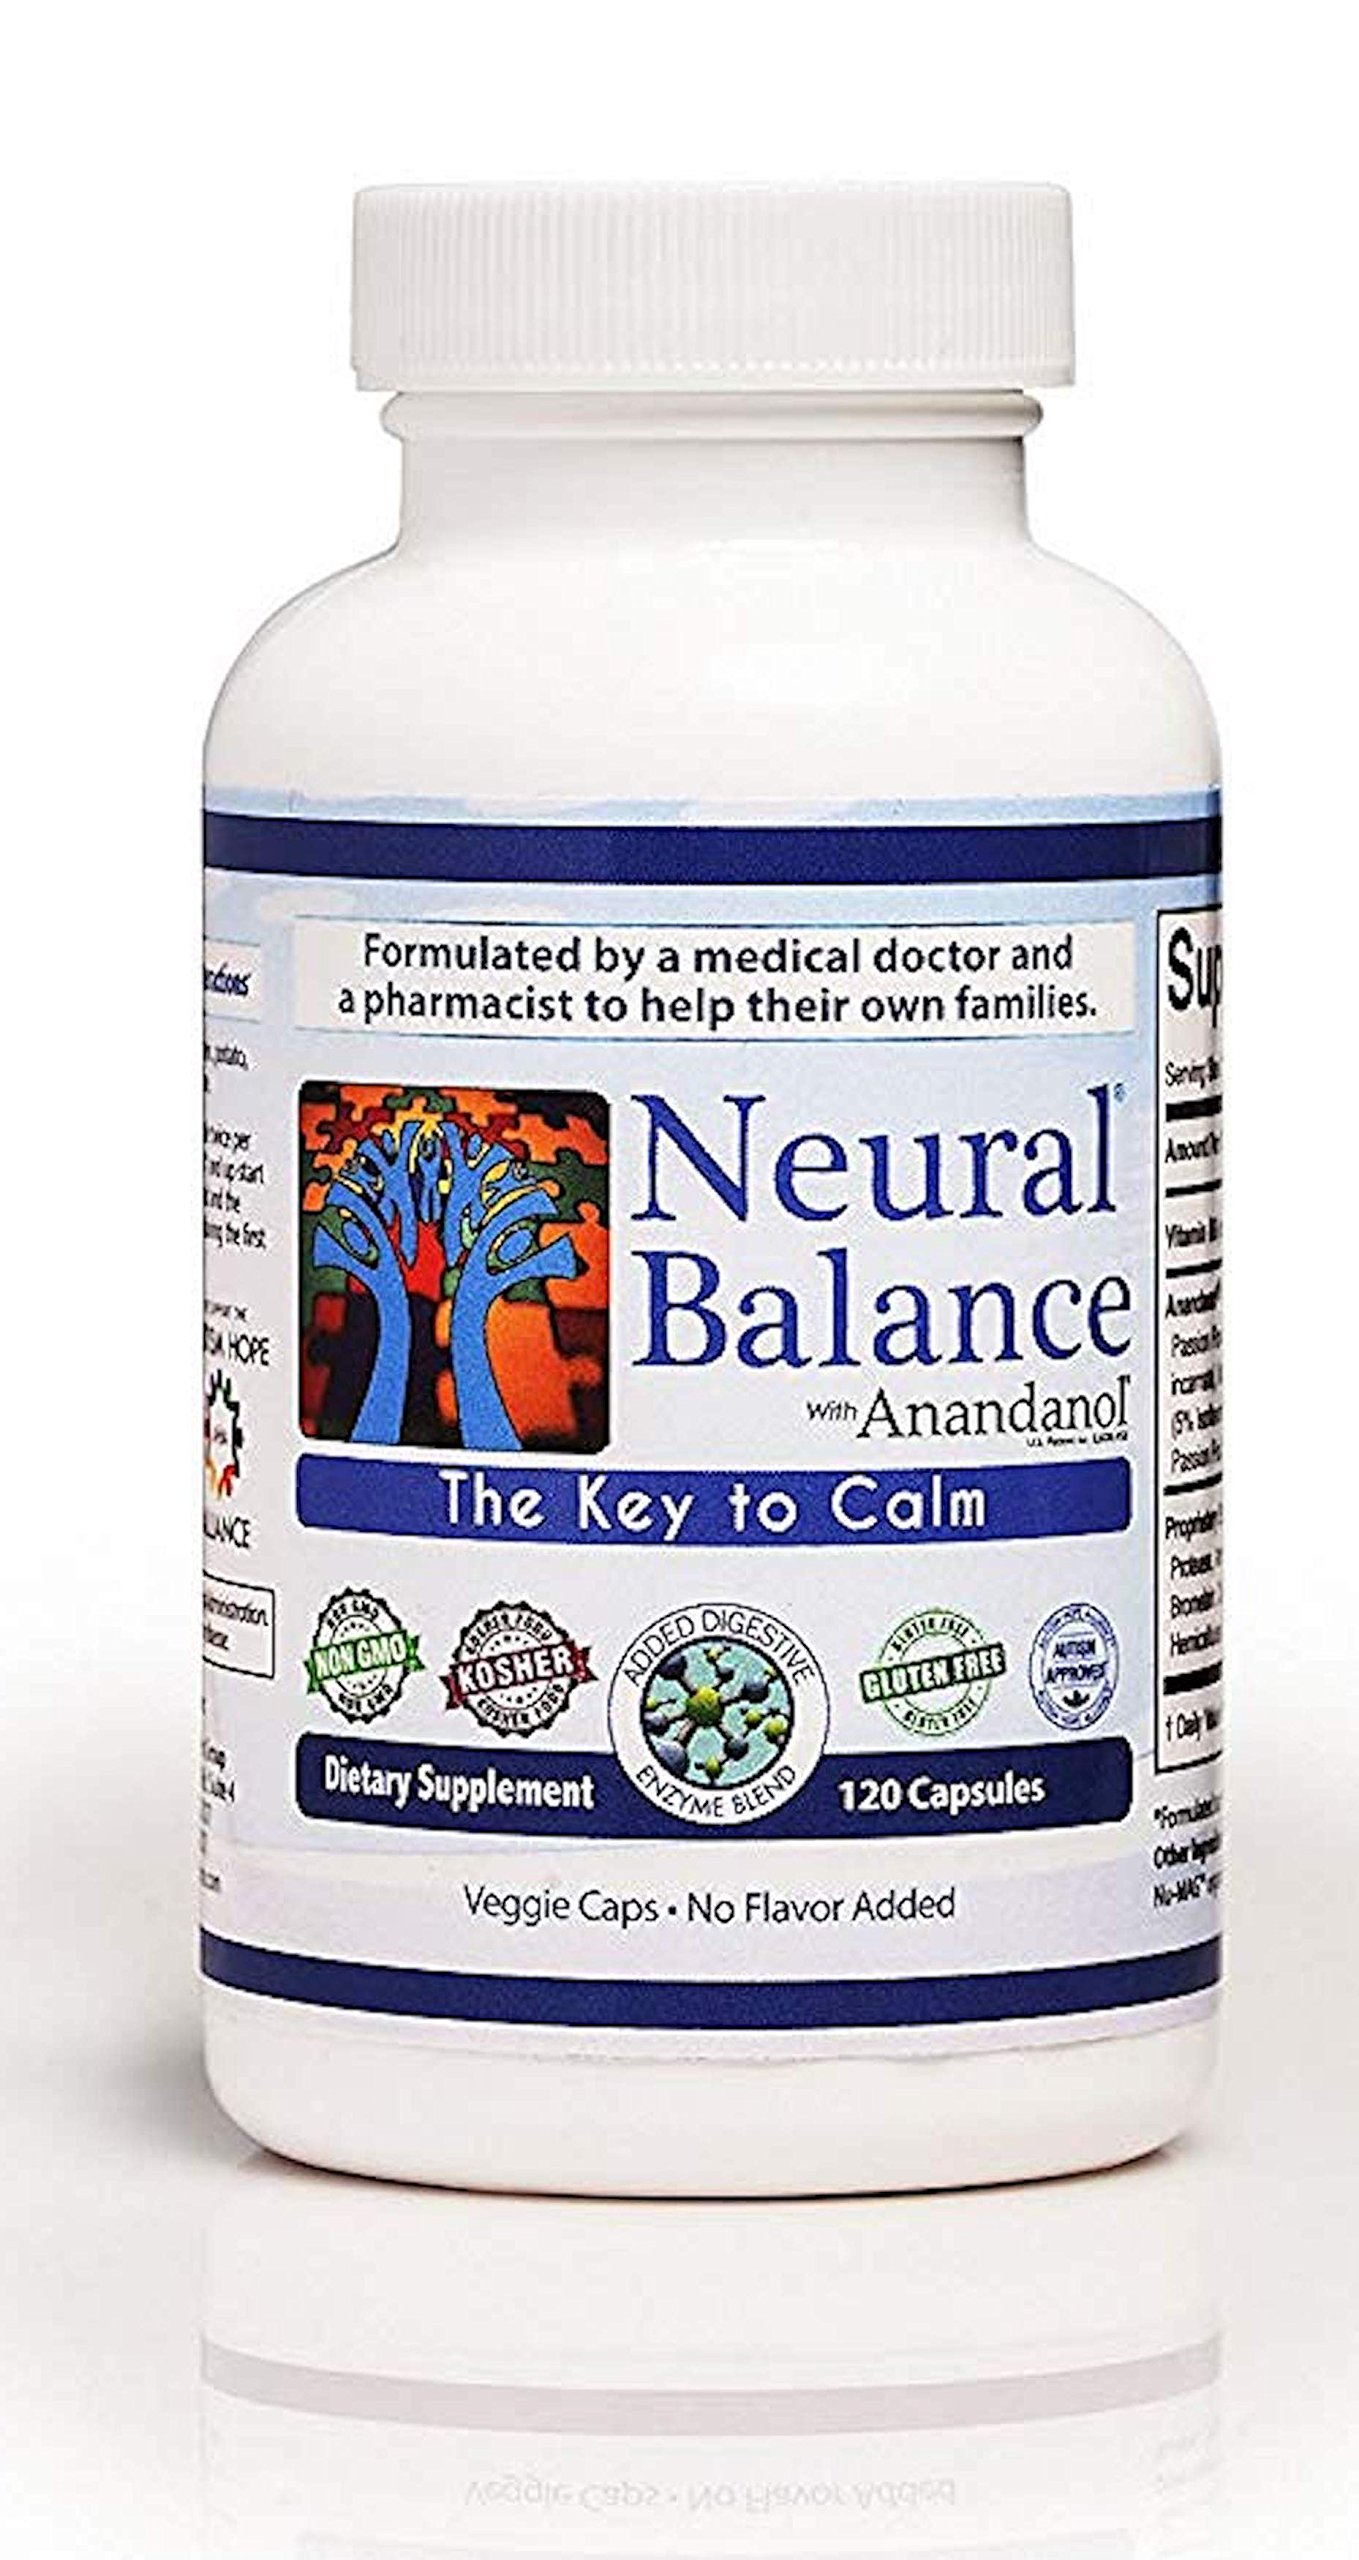 Neural Balance with Anandanol (120 Capsules)